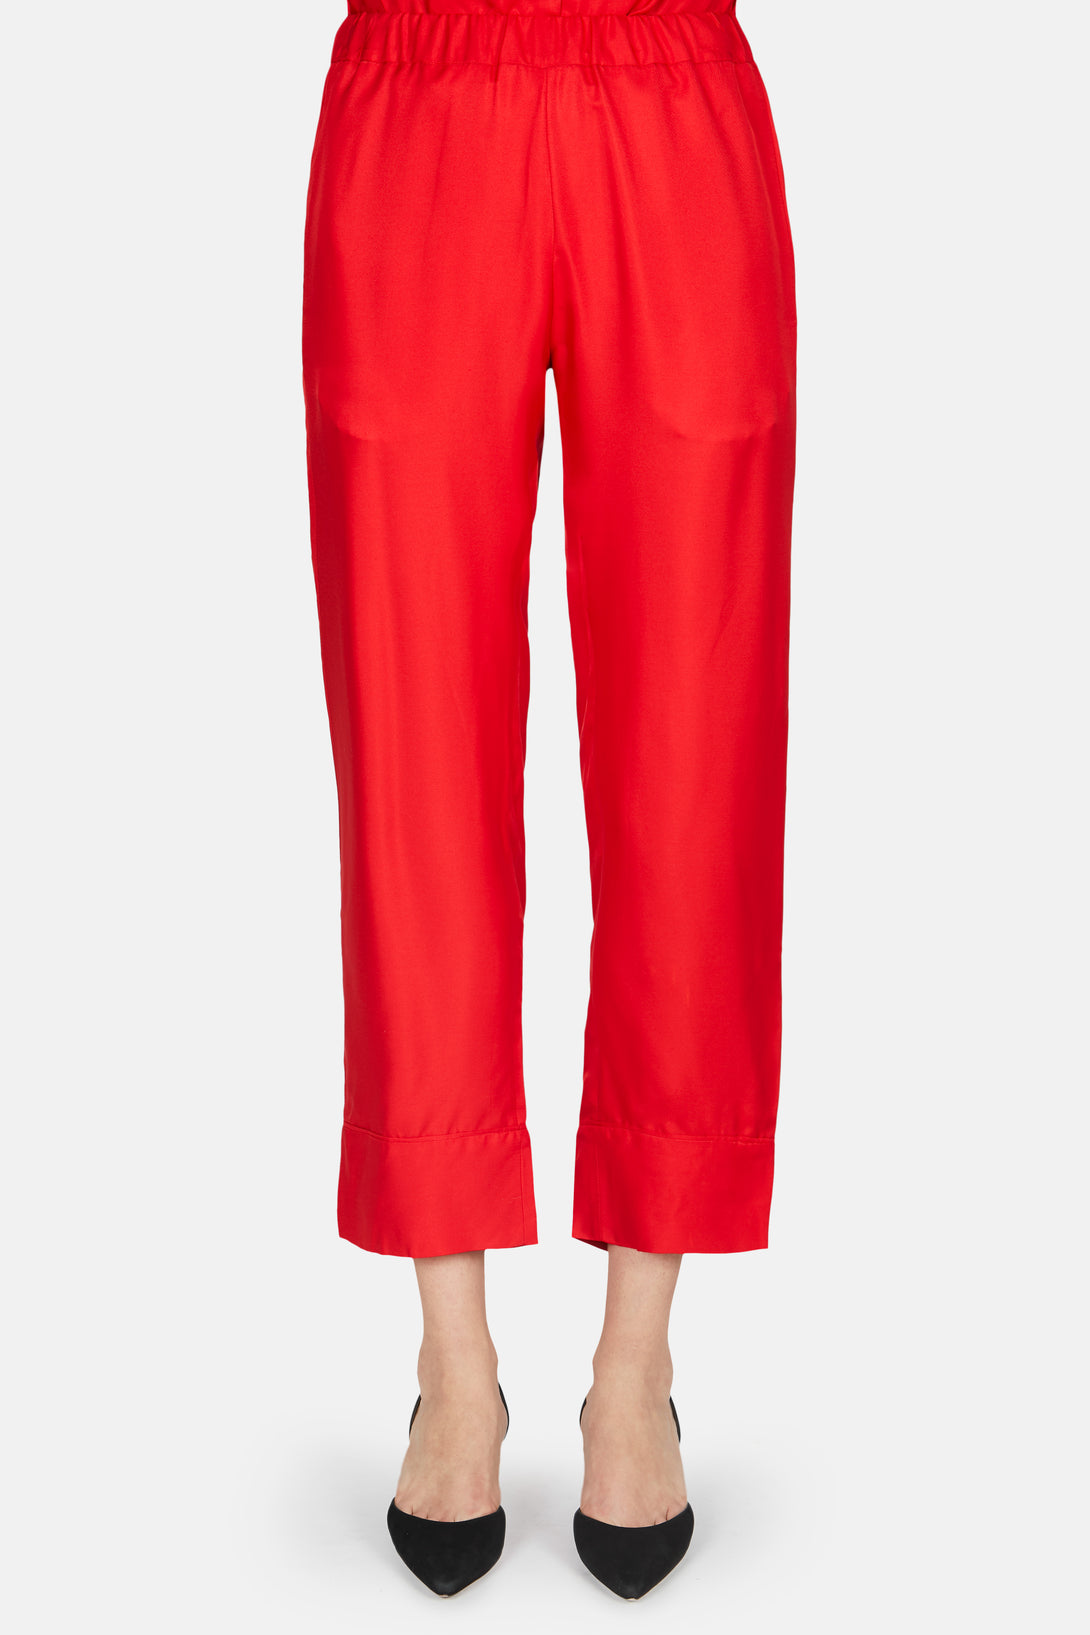 China Silk Pants - Red